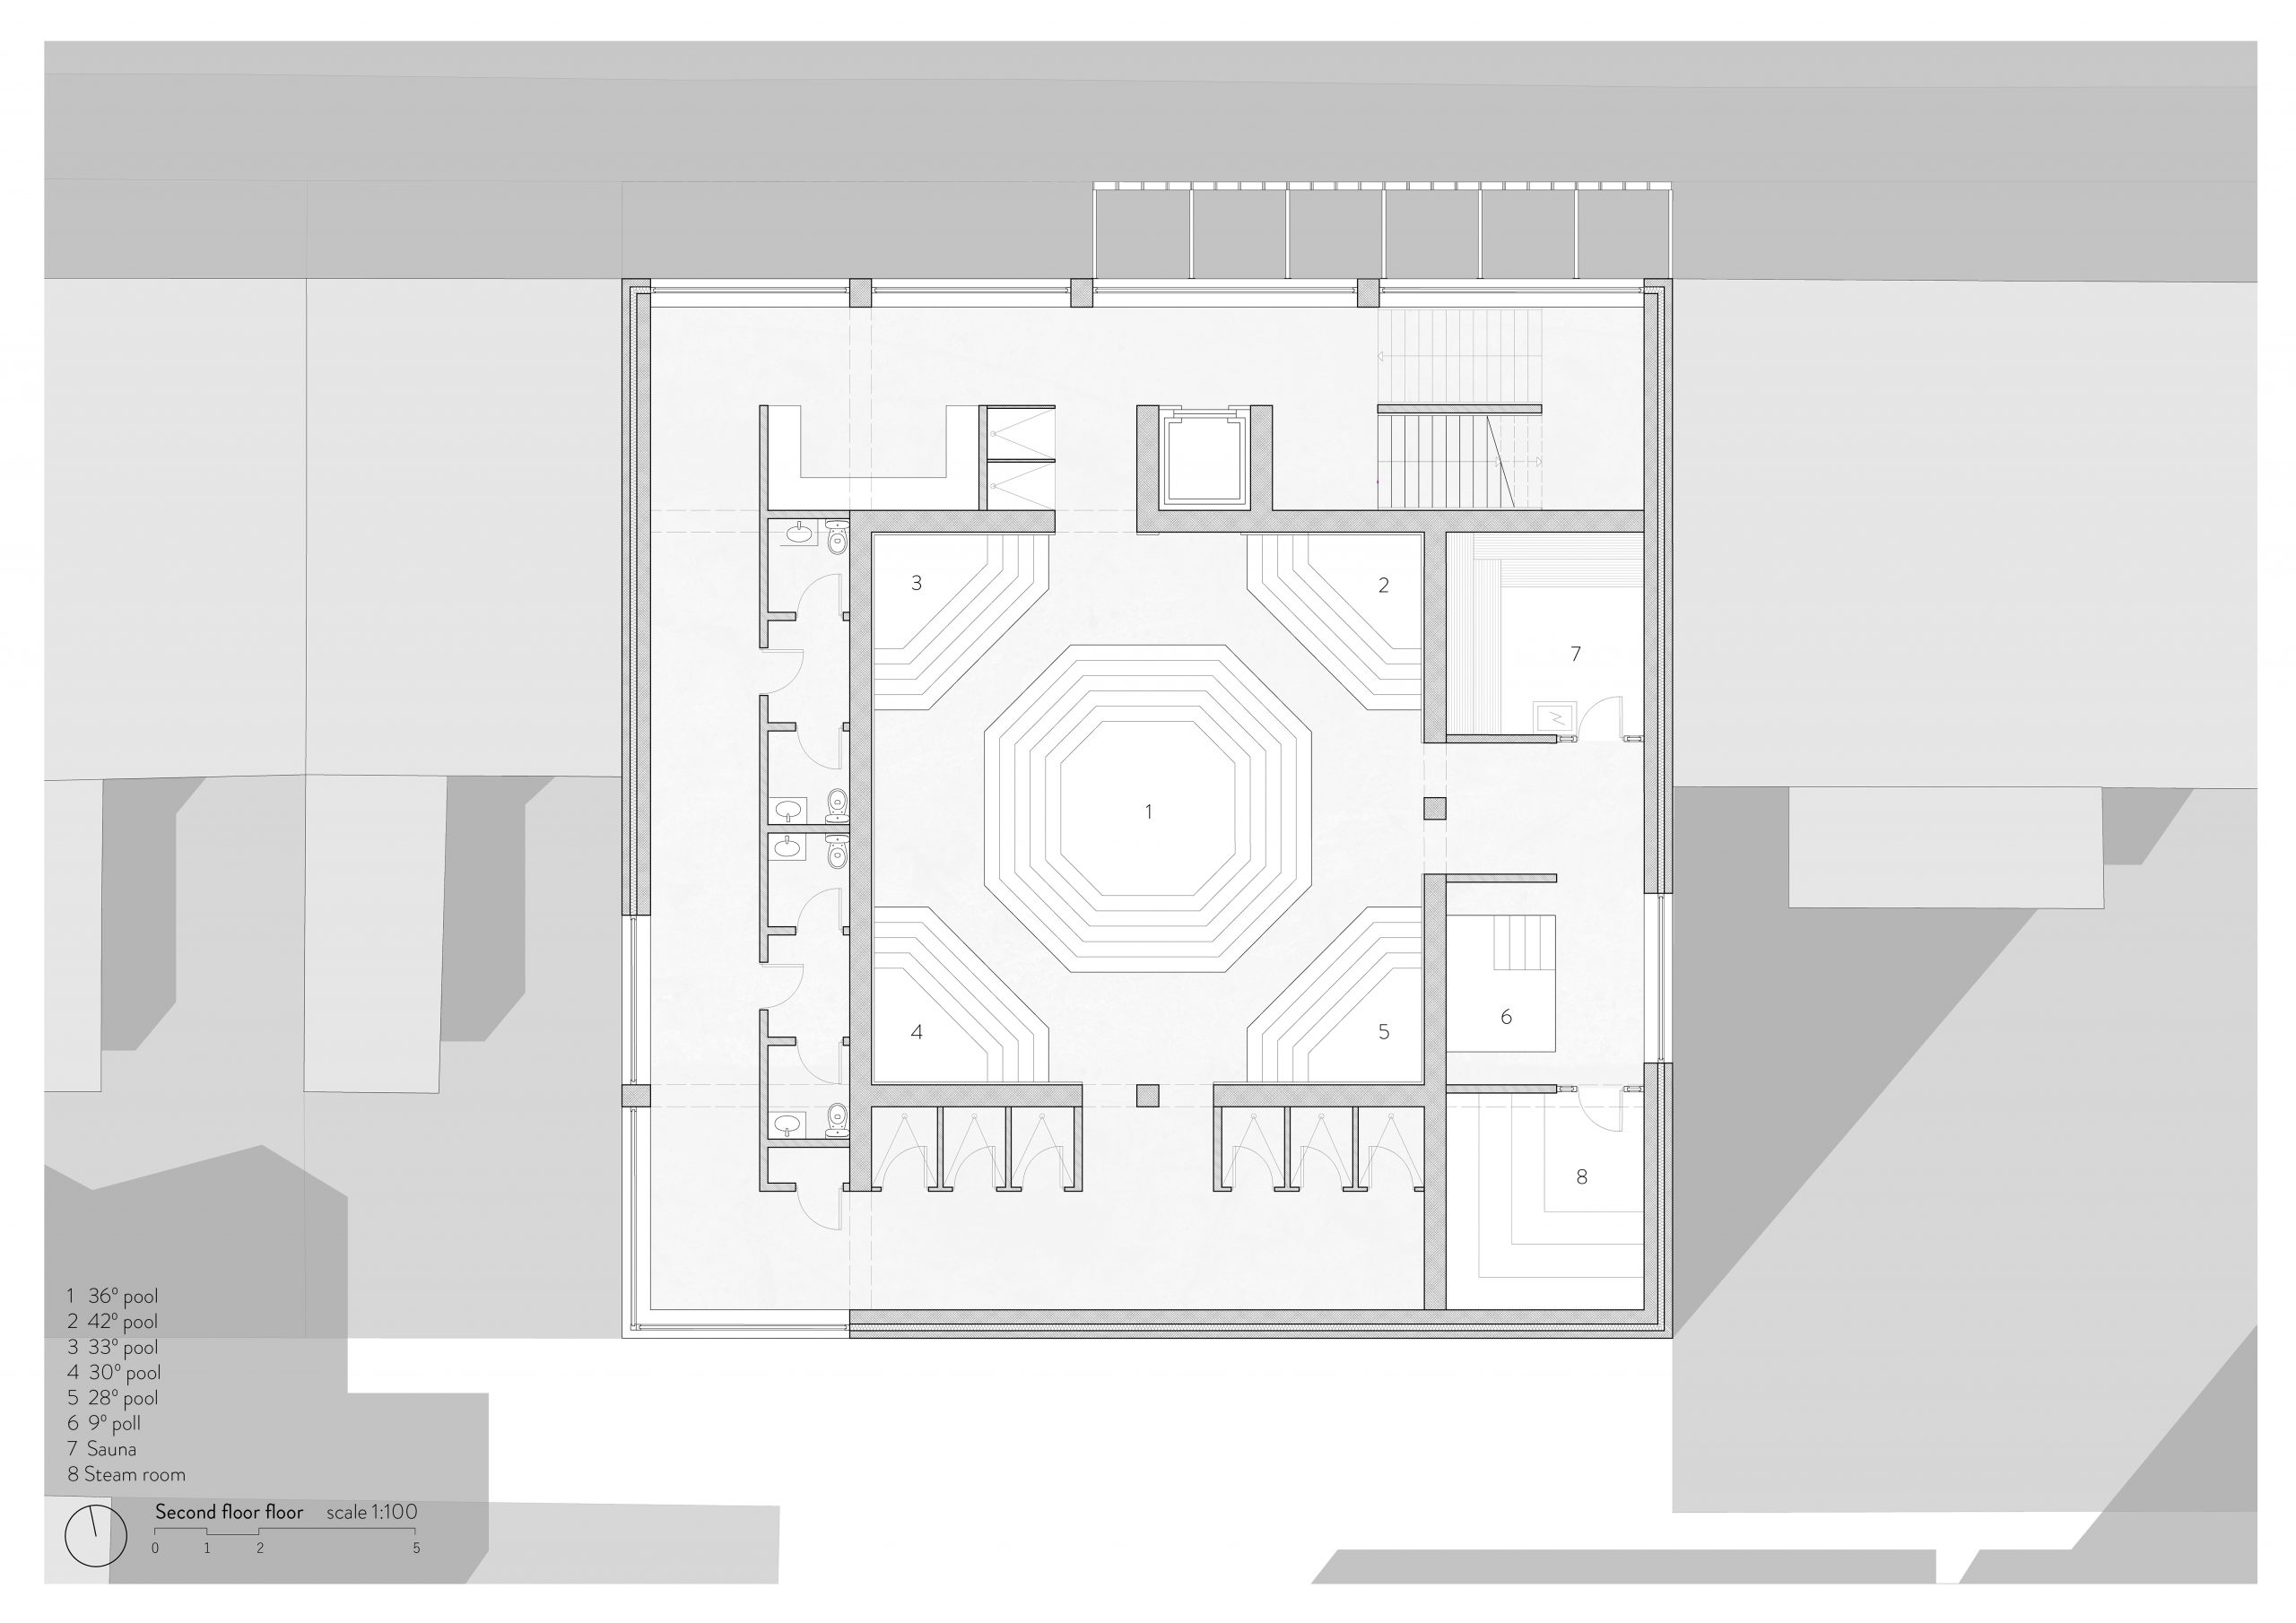 Second Floor Plan with main pool